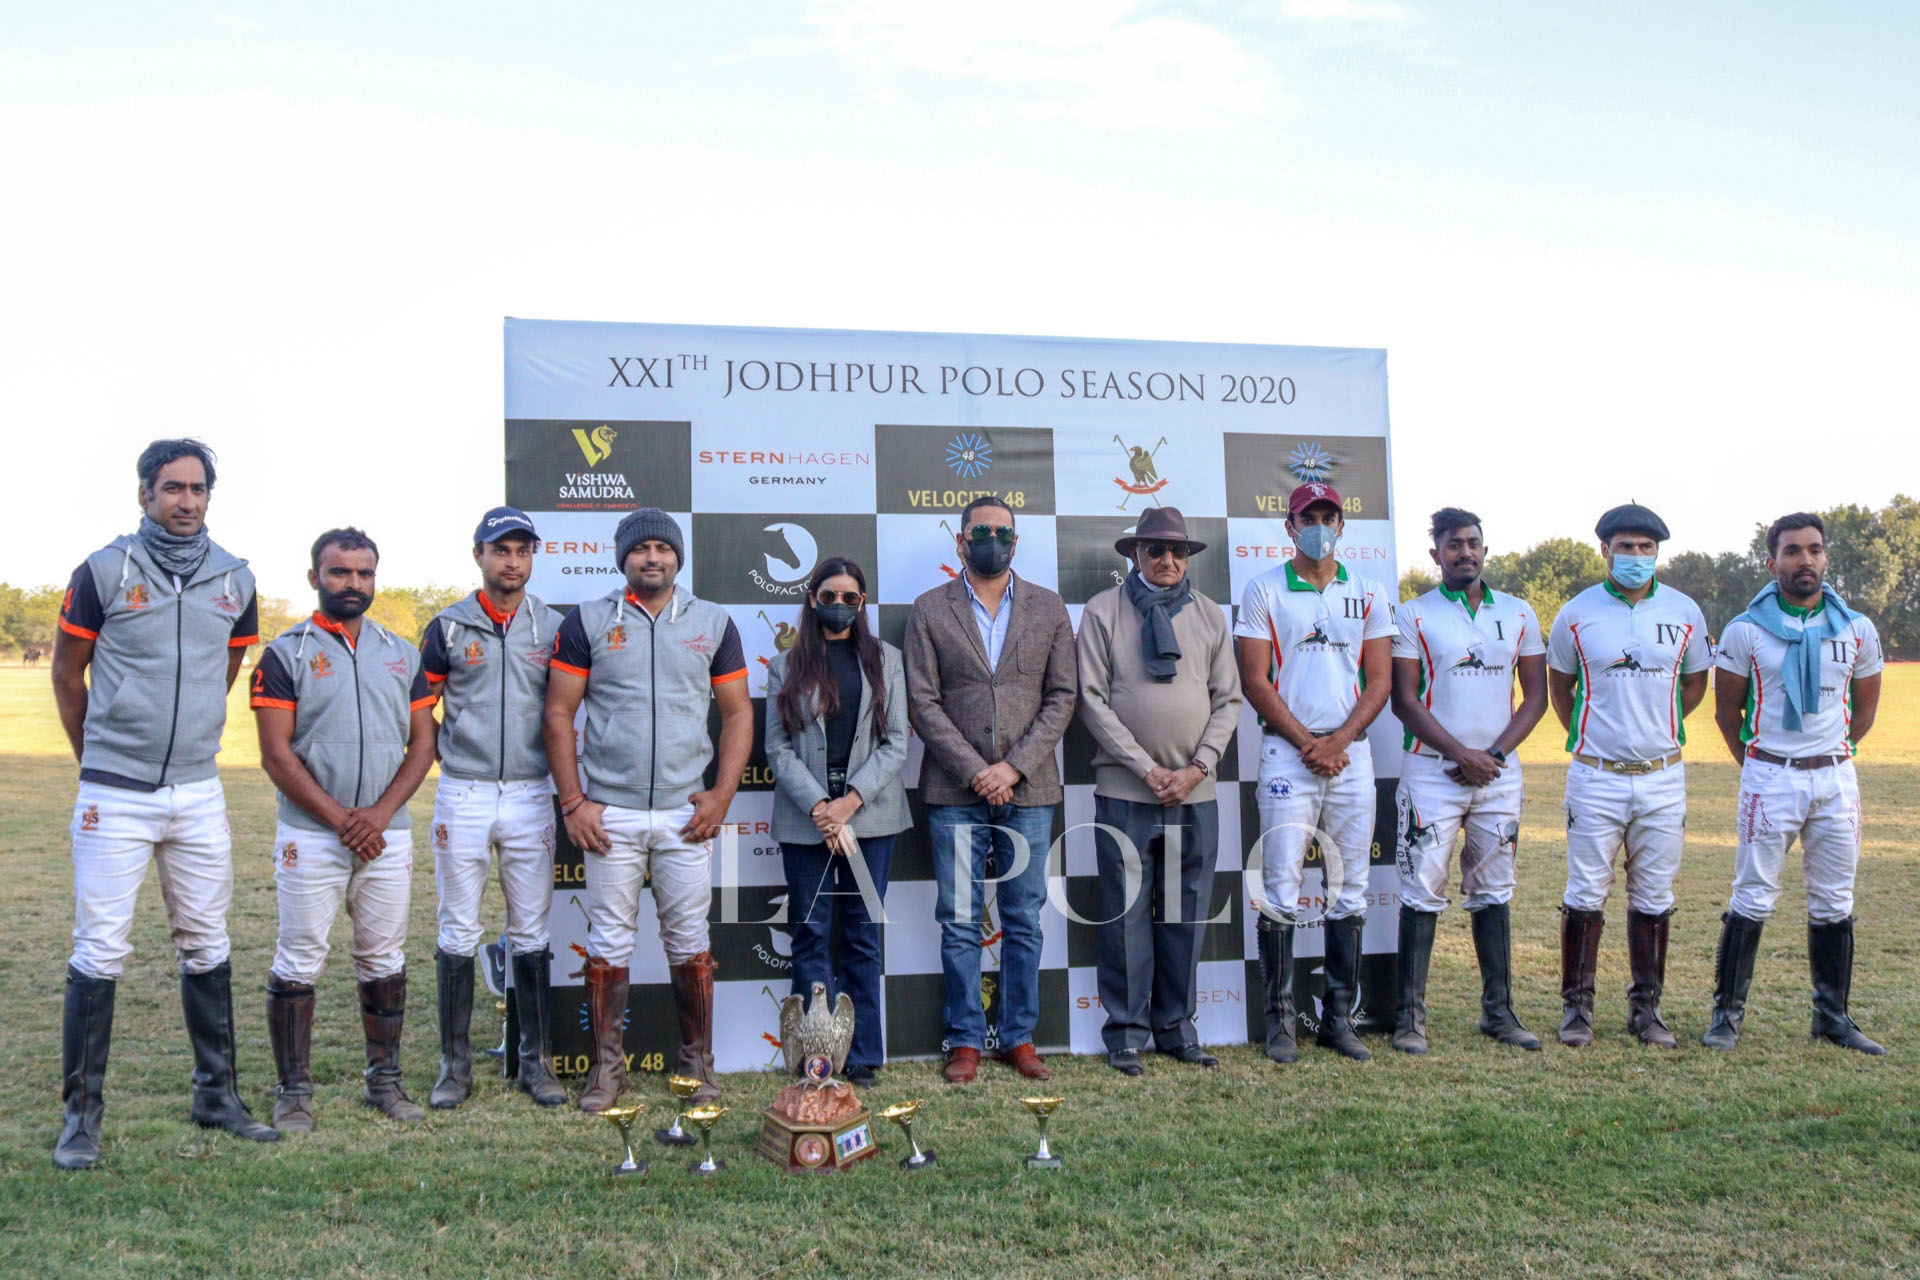 SAHARA WARRIORS OVERPOWERED KJS ACHIEVERS TO CONQUER THE POLO FACTORY MAHARAJA OF JODHPUR GOLDEN JUBILEE CUP (10 Goals) CONCLUDING AN ENTHRALLING 21ST JODHPUR POLO SEASON 2020!